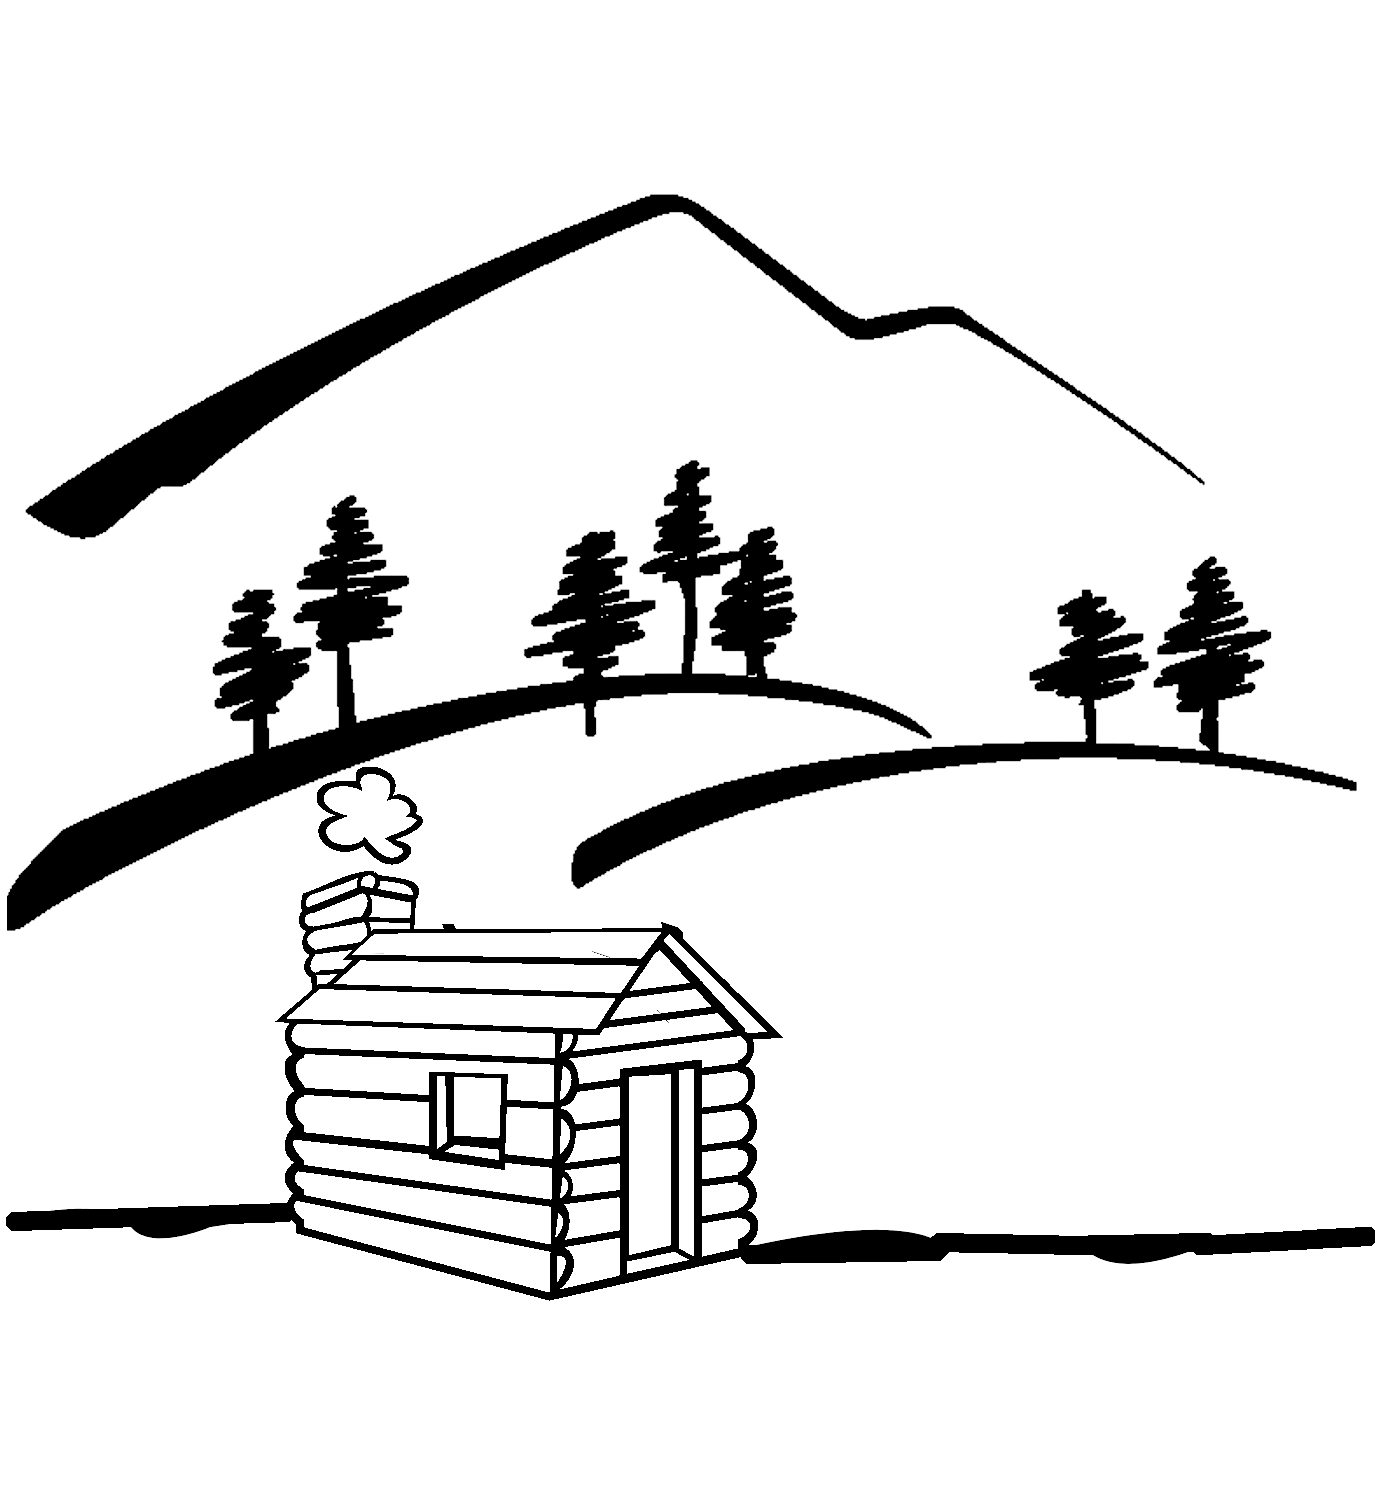 Cabin clipart easy draw. In the woods drawing